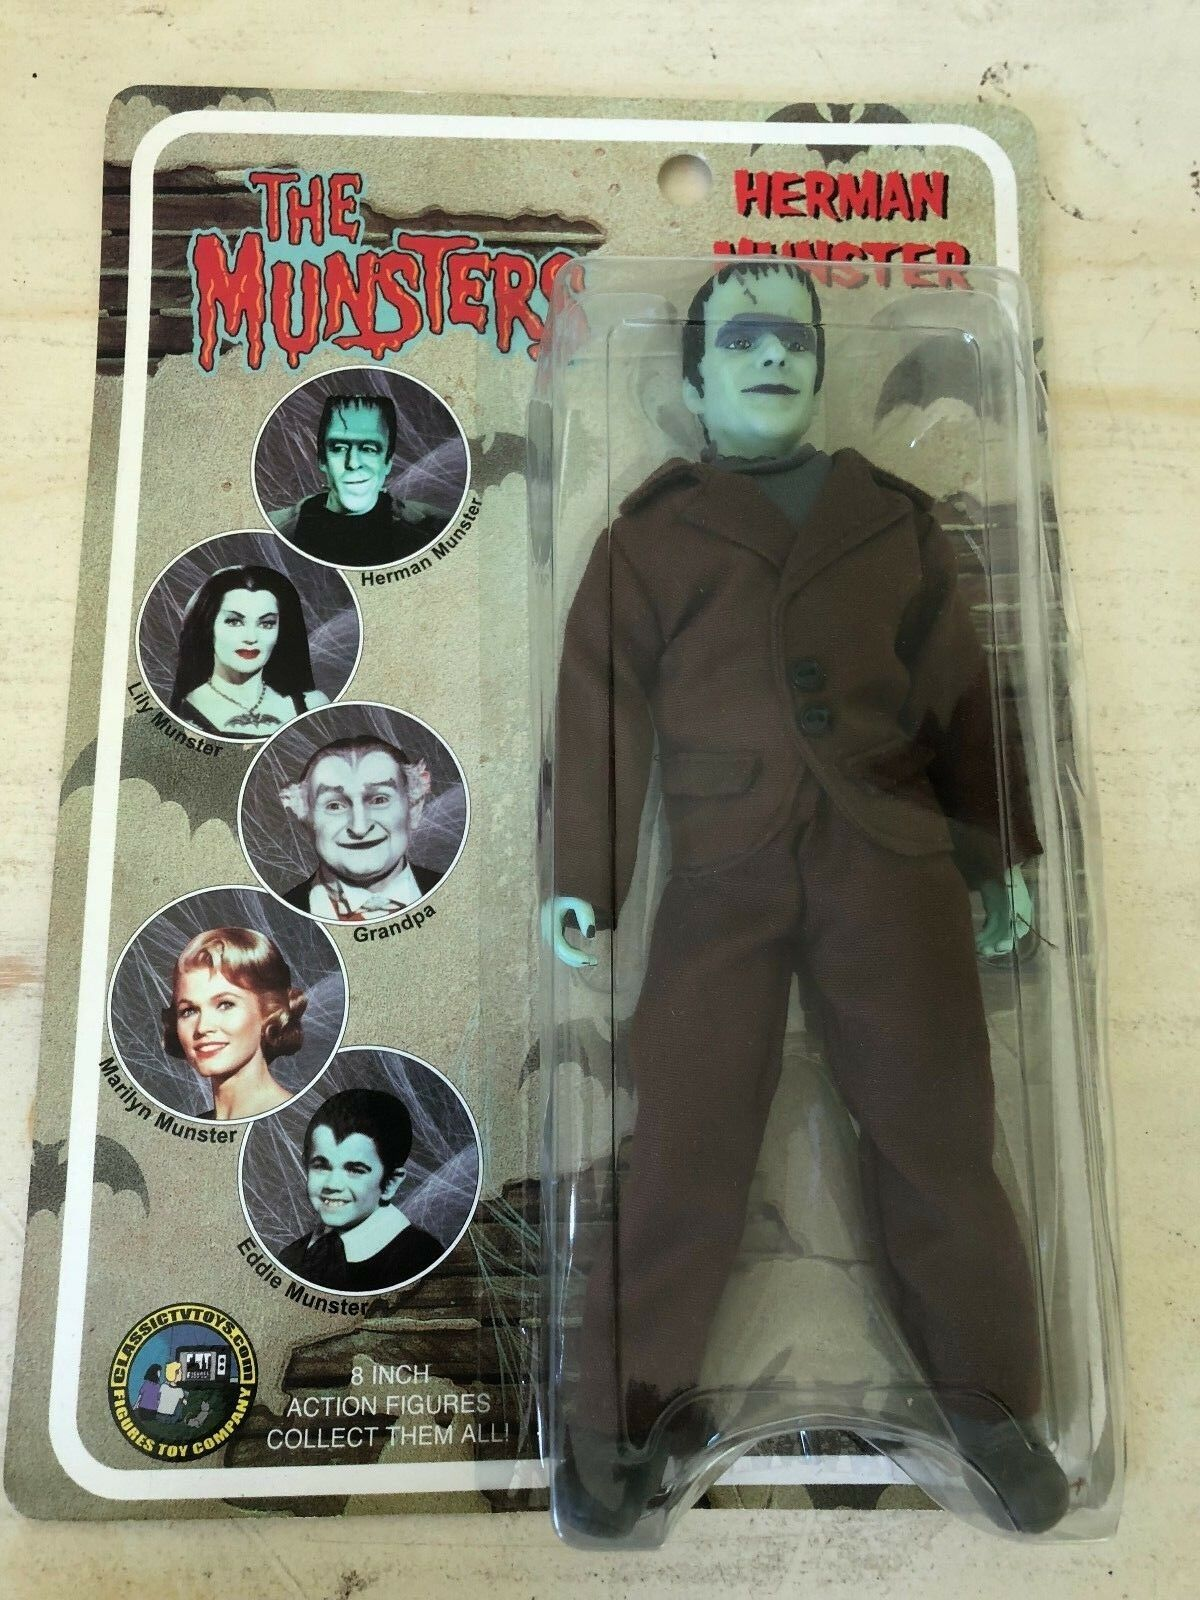 MIB The Munsters Herman Munster 8  Action Figure MEGO-Style Classic TV Toys 2004